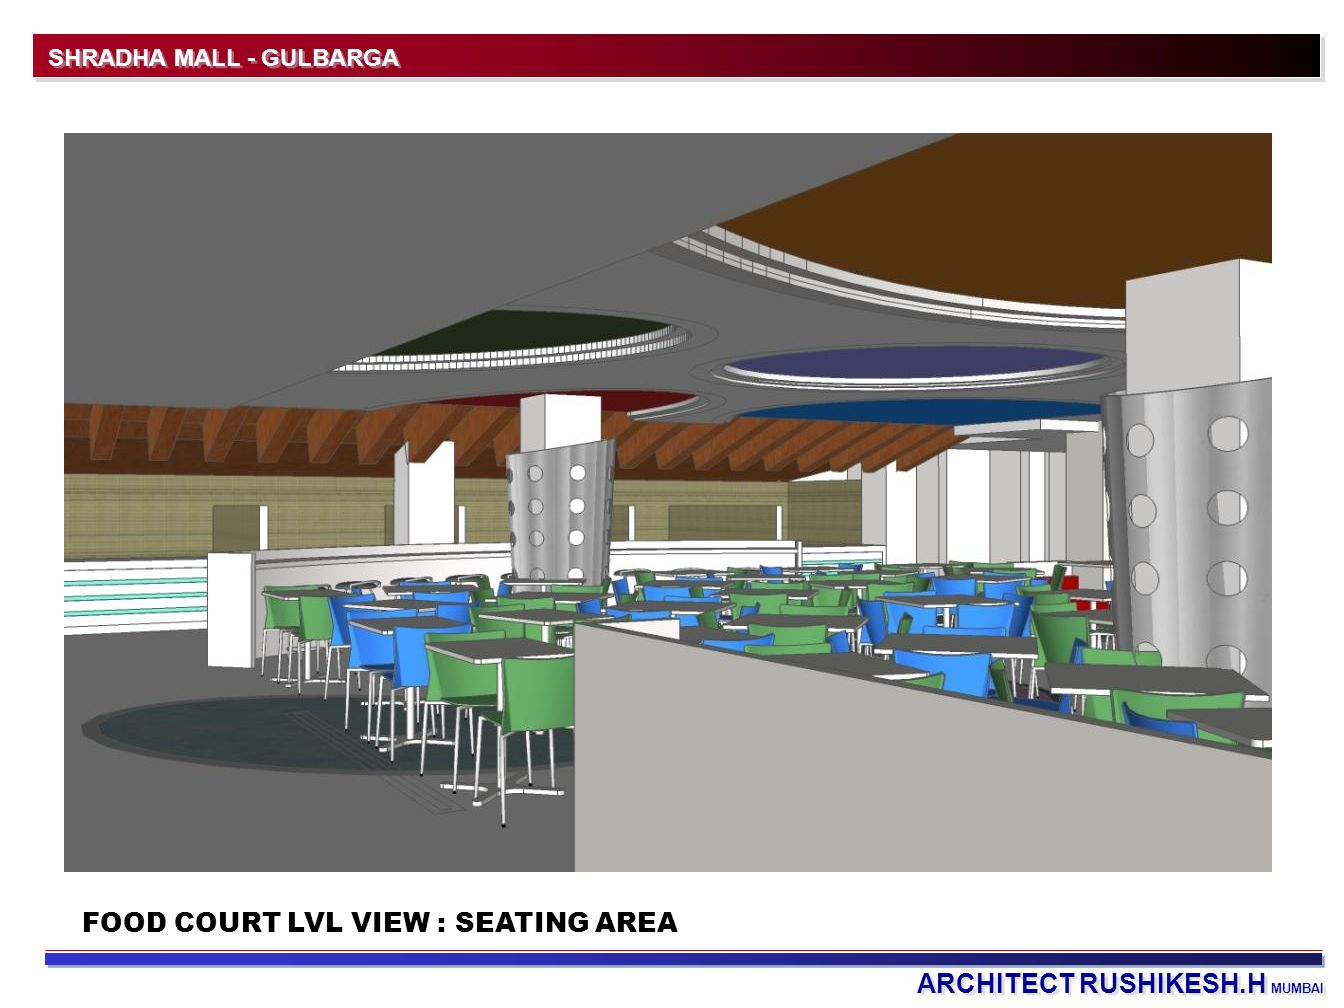 ARCHITECT RUSHIKESH.H MUMBAI SHRADHA MALL - GULBARGA FOOD COURT LVL VIEW : SEATING AREA